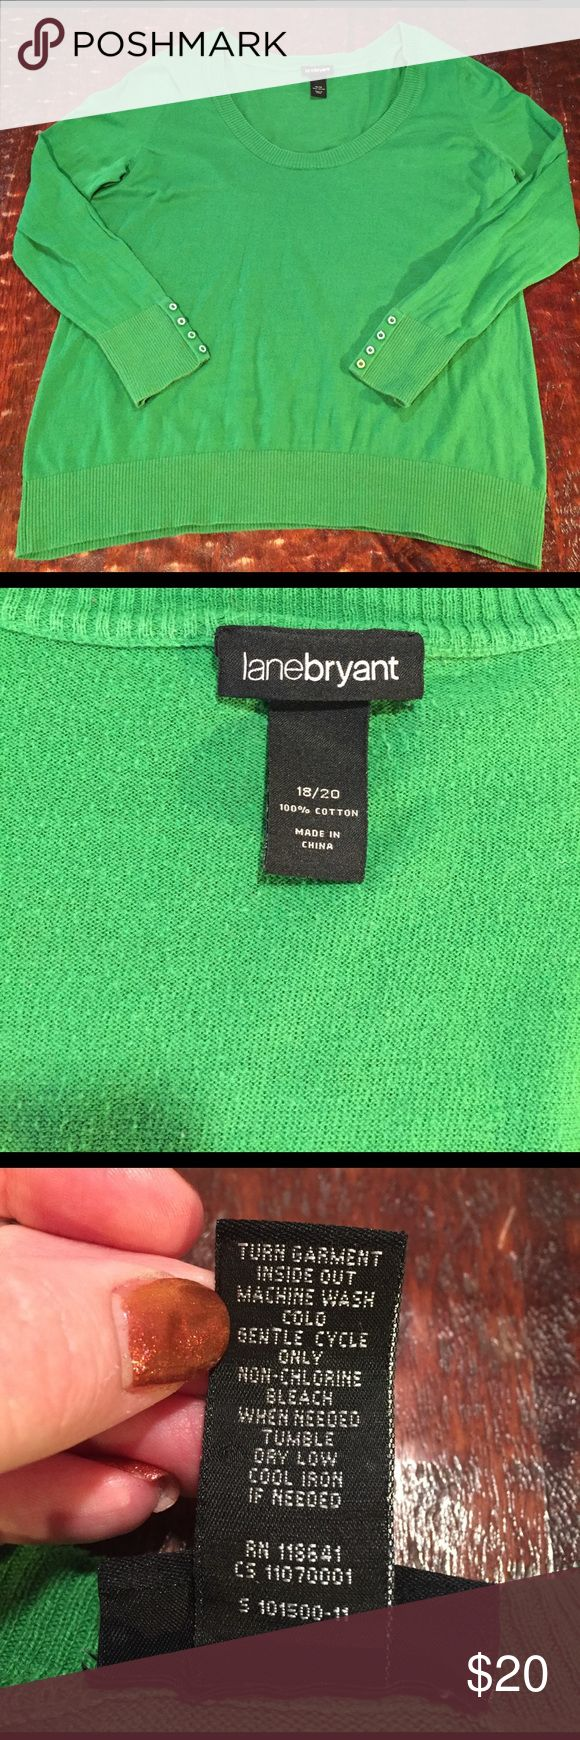 """Lane Bryant Scoop Neck Long Sleeve Sweater Lane Bryant Scoop Neck Long Sleeve Sweater Size 18/20. Sweater is 28"""" from shoulder to seam. Bust measures 24"""" laying flat. Sweater has slight fading but is otherwise in great condition. This is visible in pics. Comes from a Smoke Free/Pet Friendly home. Offers always welcome. Lane Bryant Sweaters Crew & Scoop Necks"""